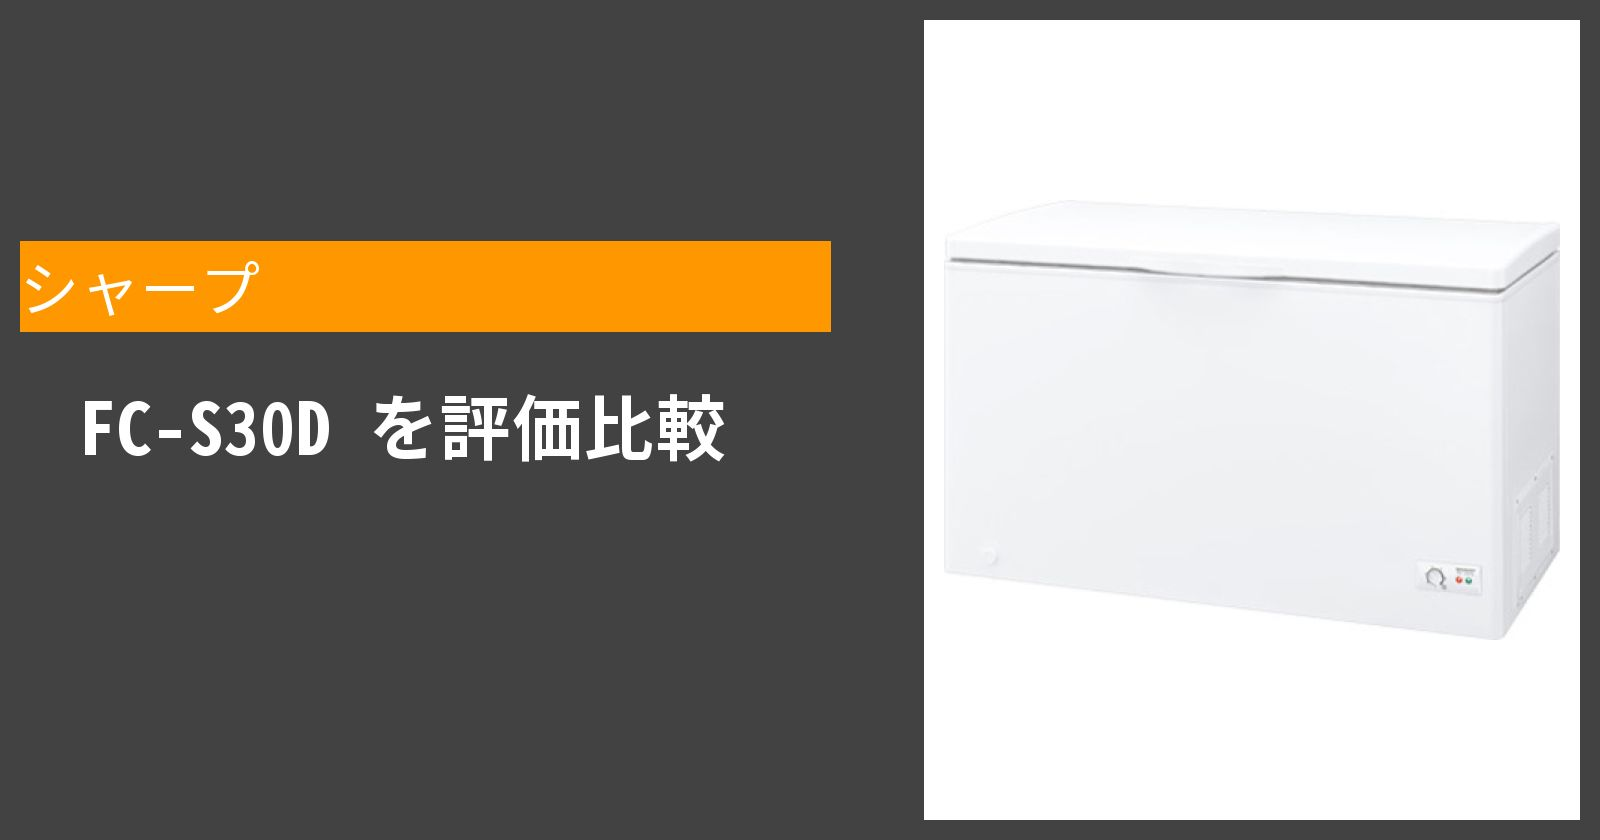 FC-S30Dを徹底評価